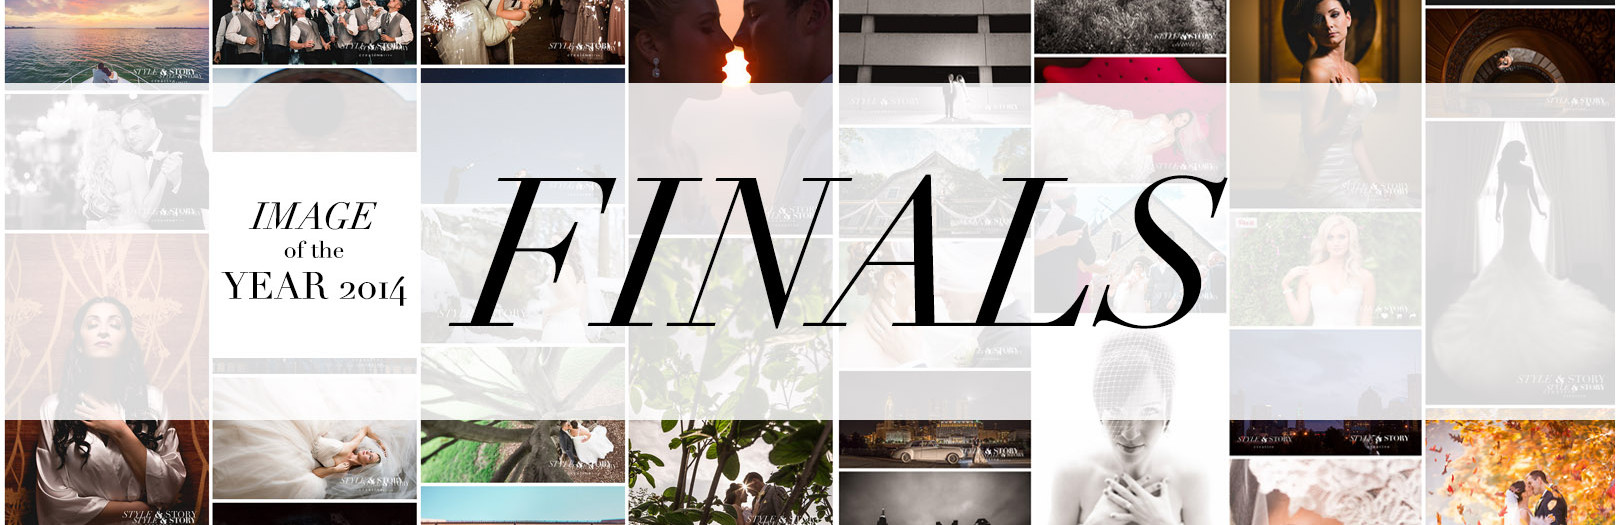 Style & Story Creative, Image of the Year 2014: Finals